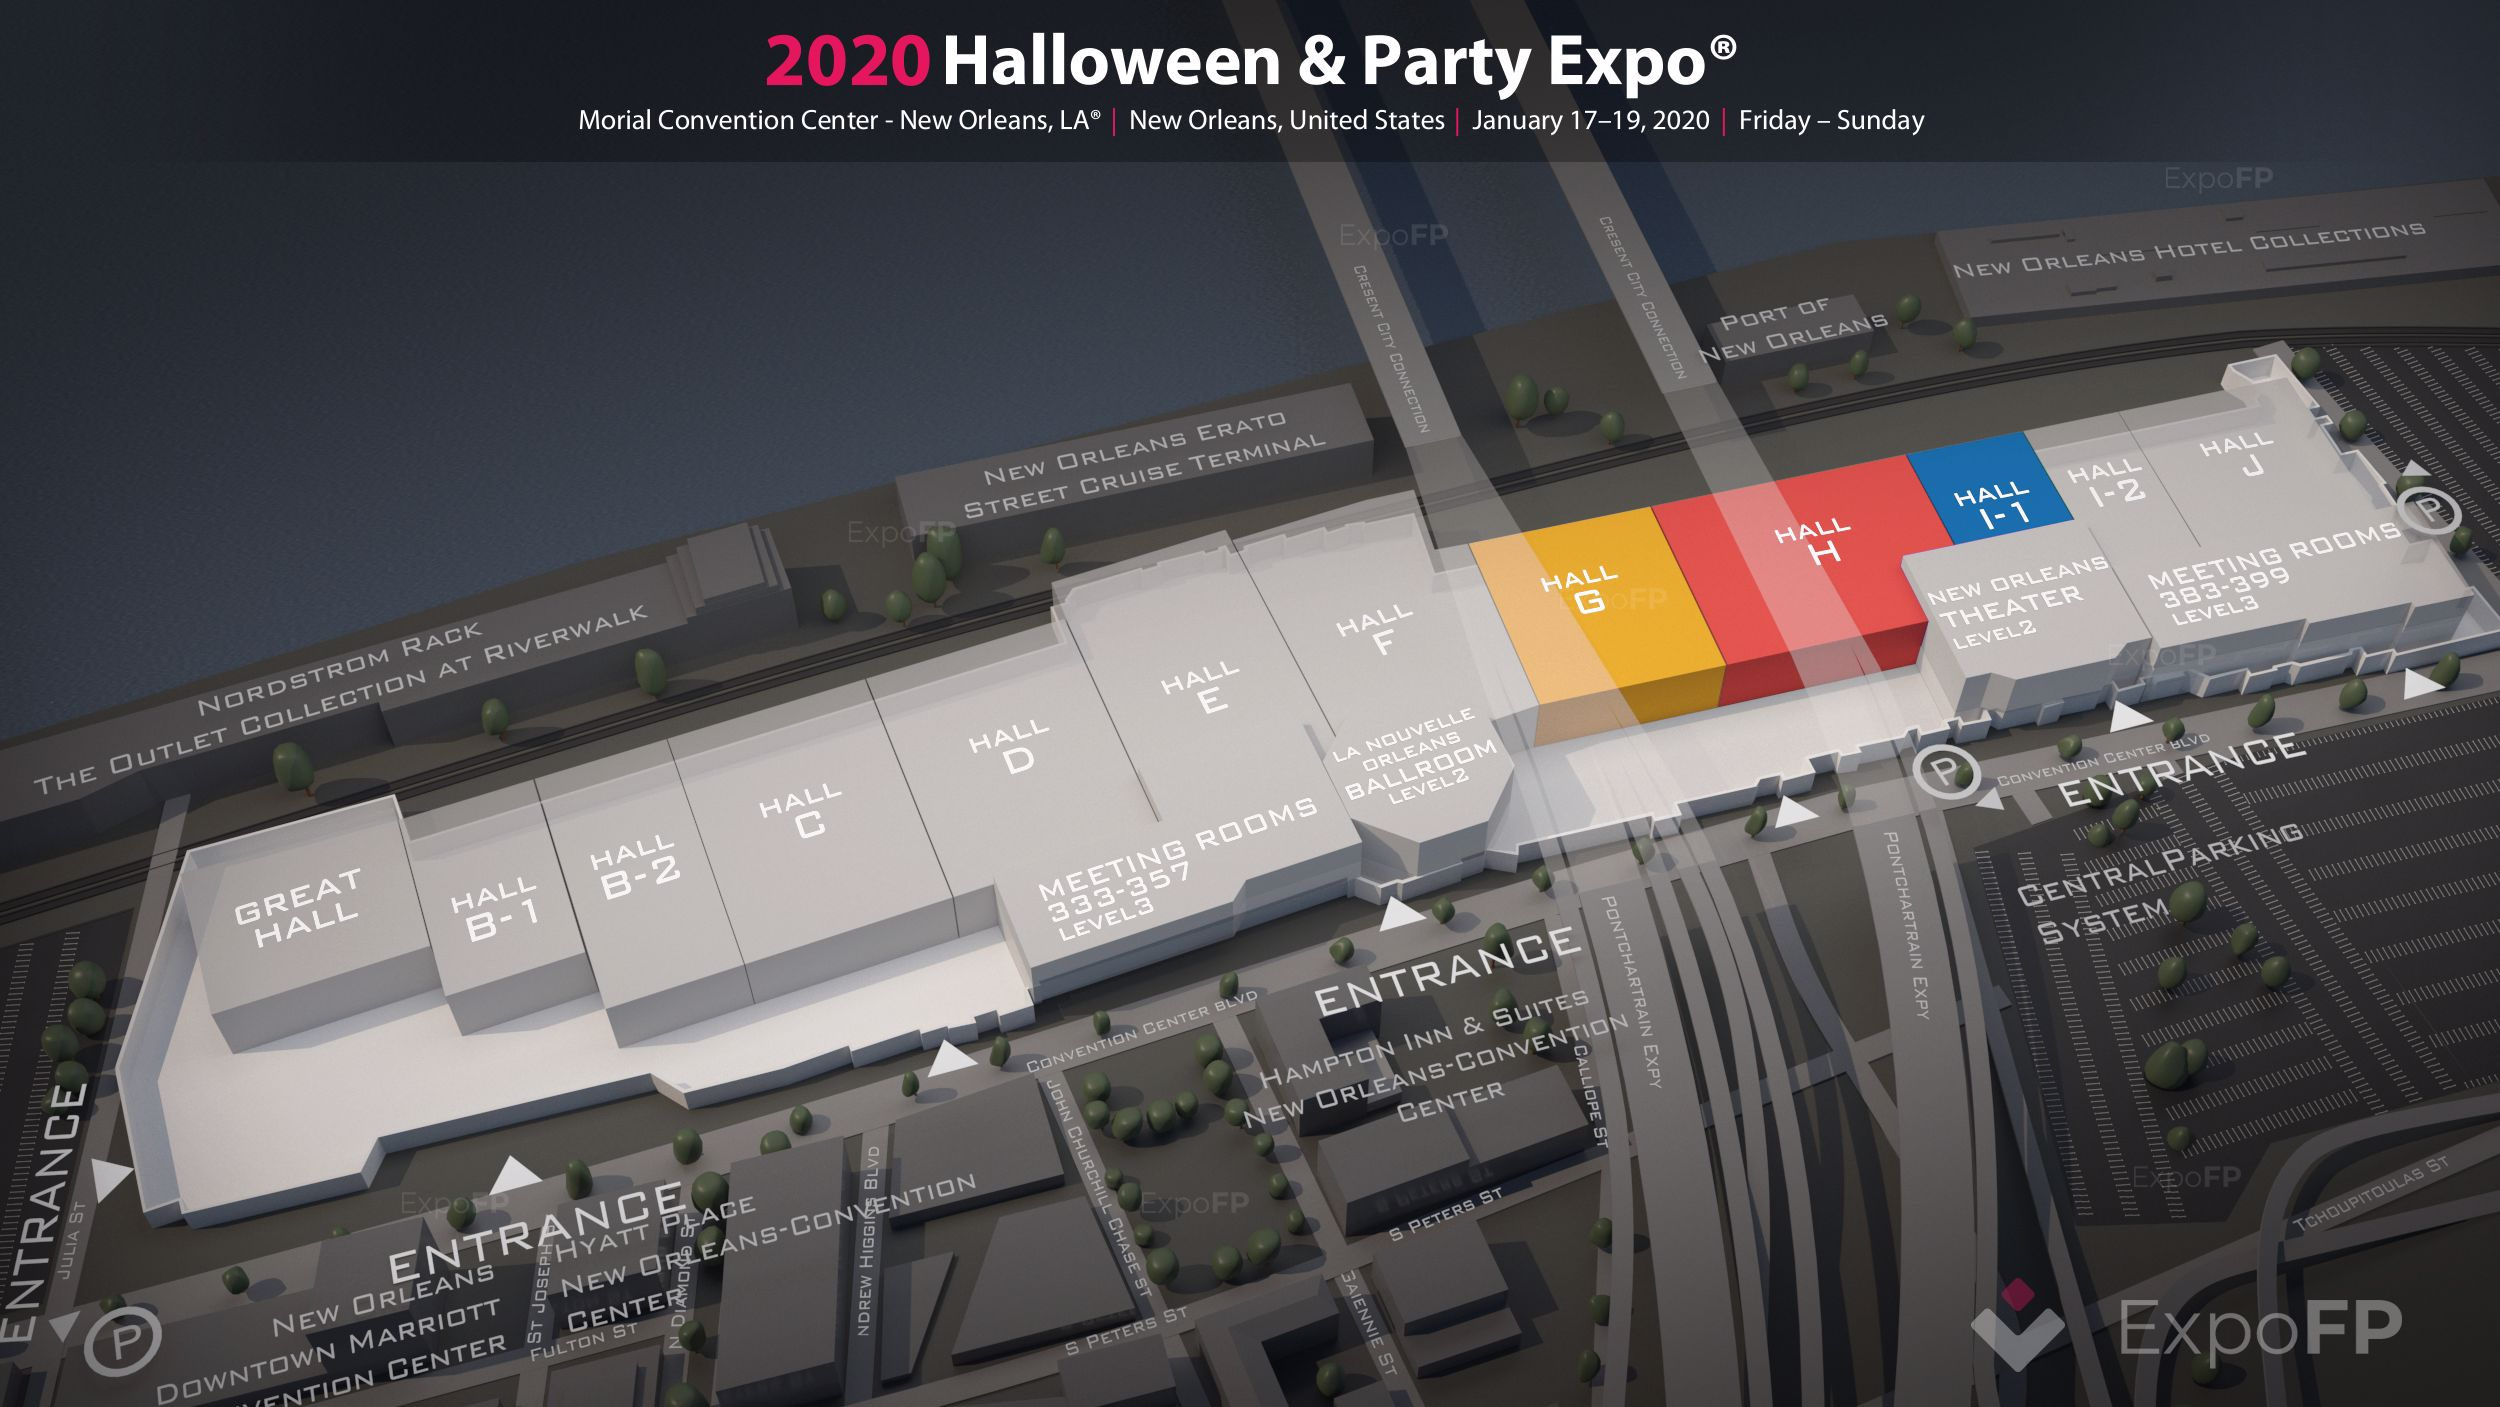 New Orleans Halloween Party Expo 2020 Information Halloween & Party Expo 2020 in Morial Convention Center   New